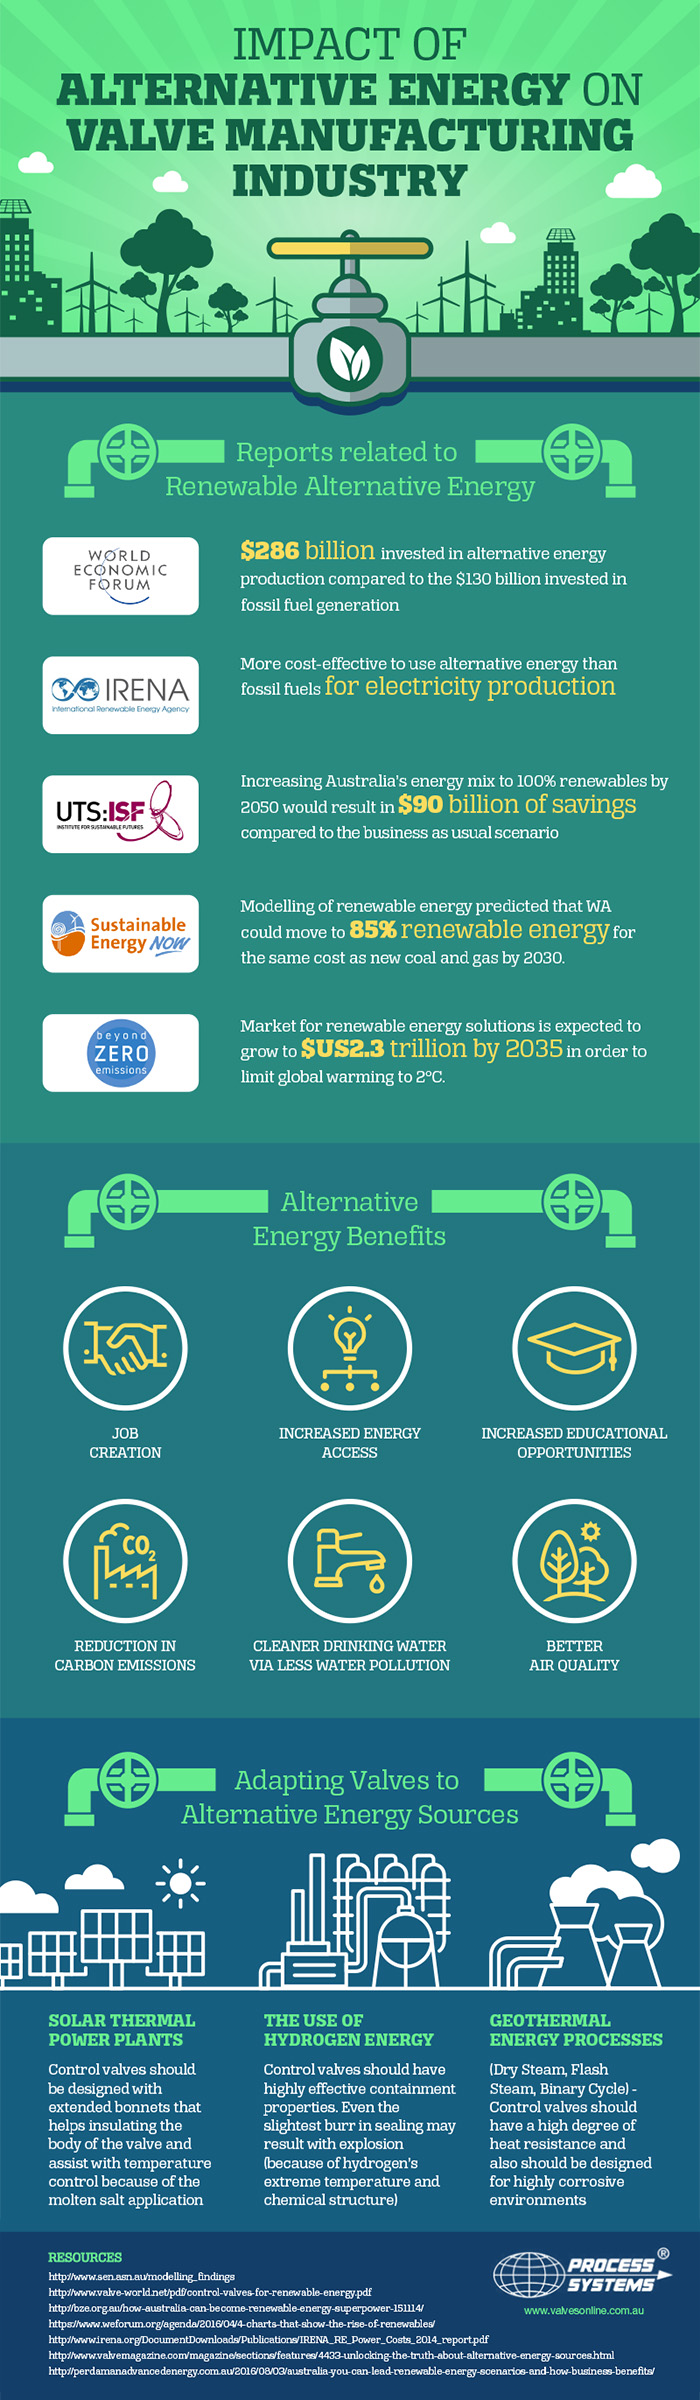 alternative energy and valves infographic